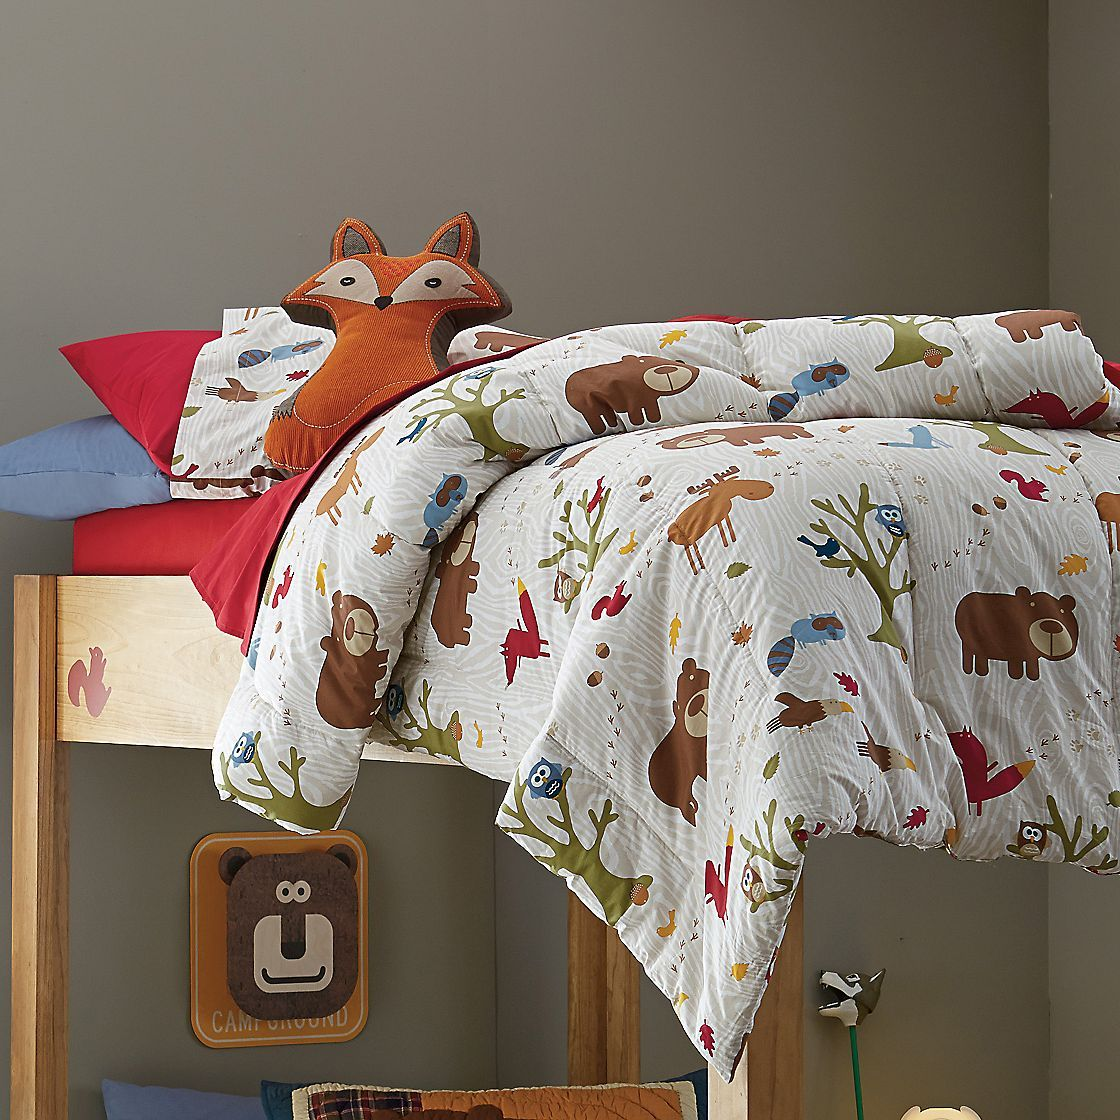 Covered In Adorable Woodland Creatures This Cozy Kids